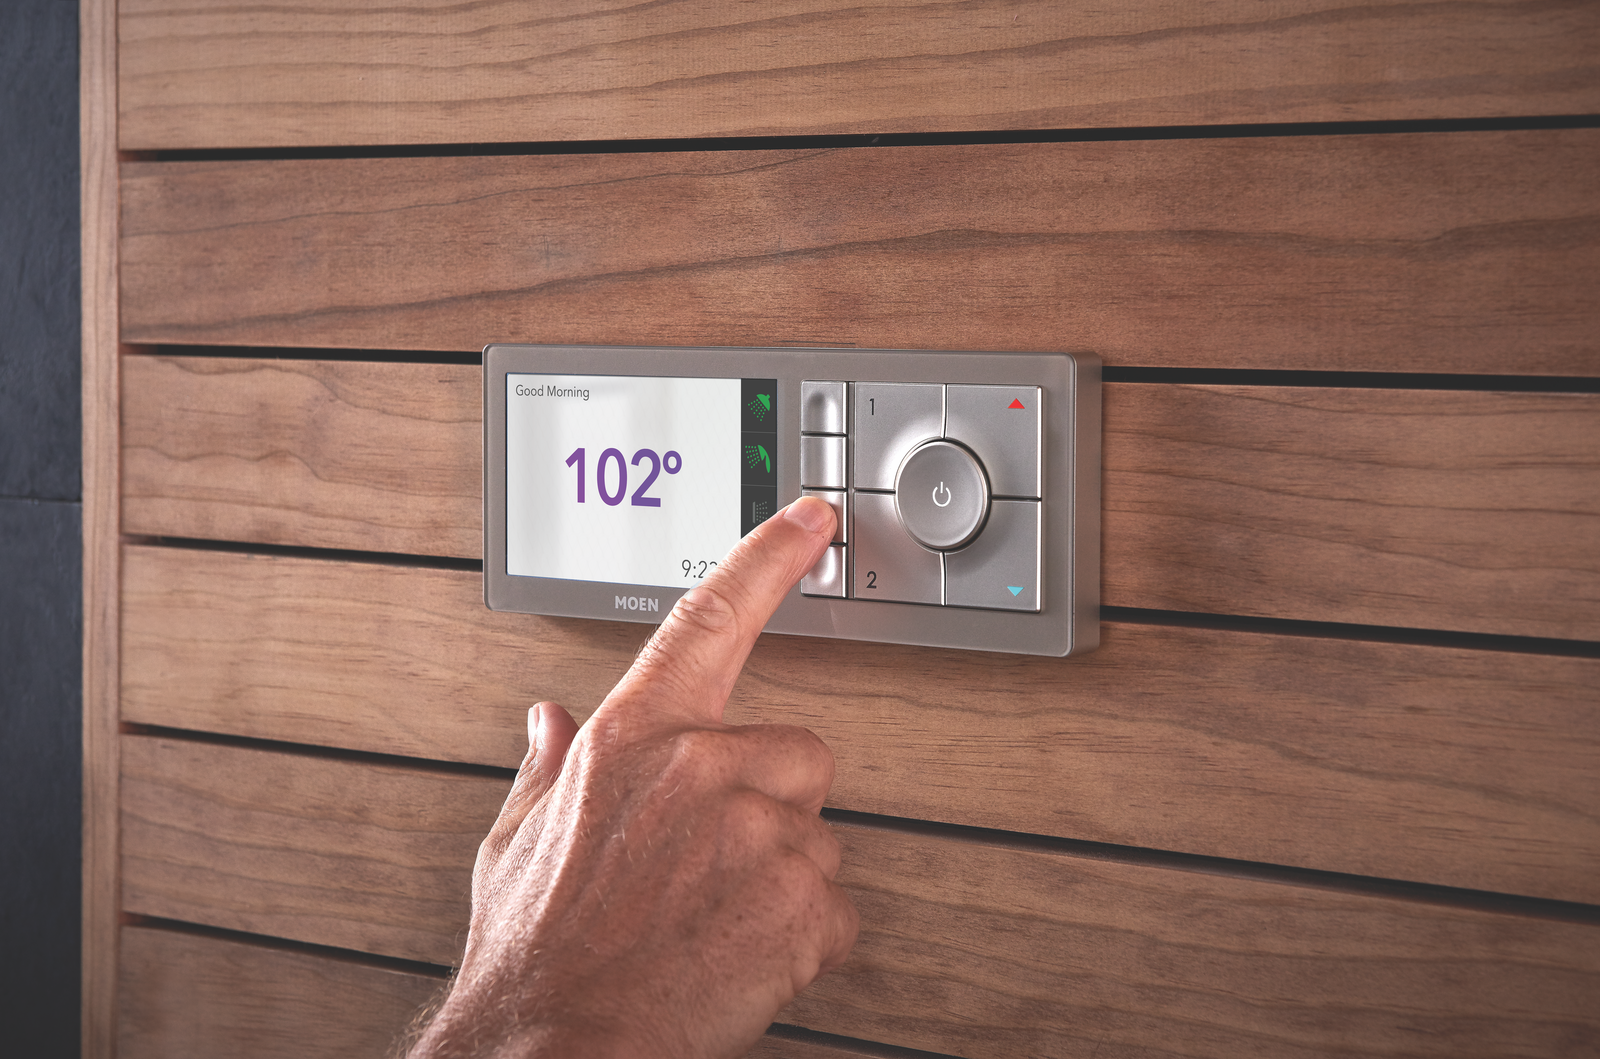 Large, intuitive-to-use buttons save your presets on the U by Moen controller, which is designed to blend into a variety of bathroom styles. Turn Your Bathroom Into a Private Sanctuary With These Upgrades - Photo 6 of 6